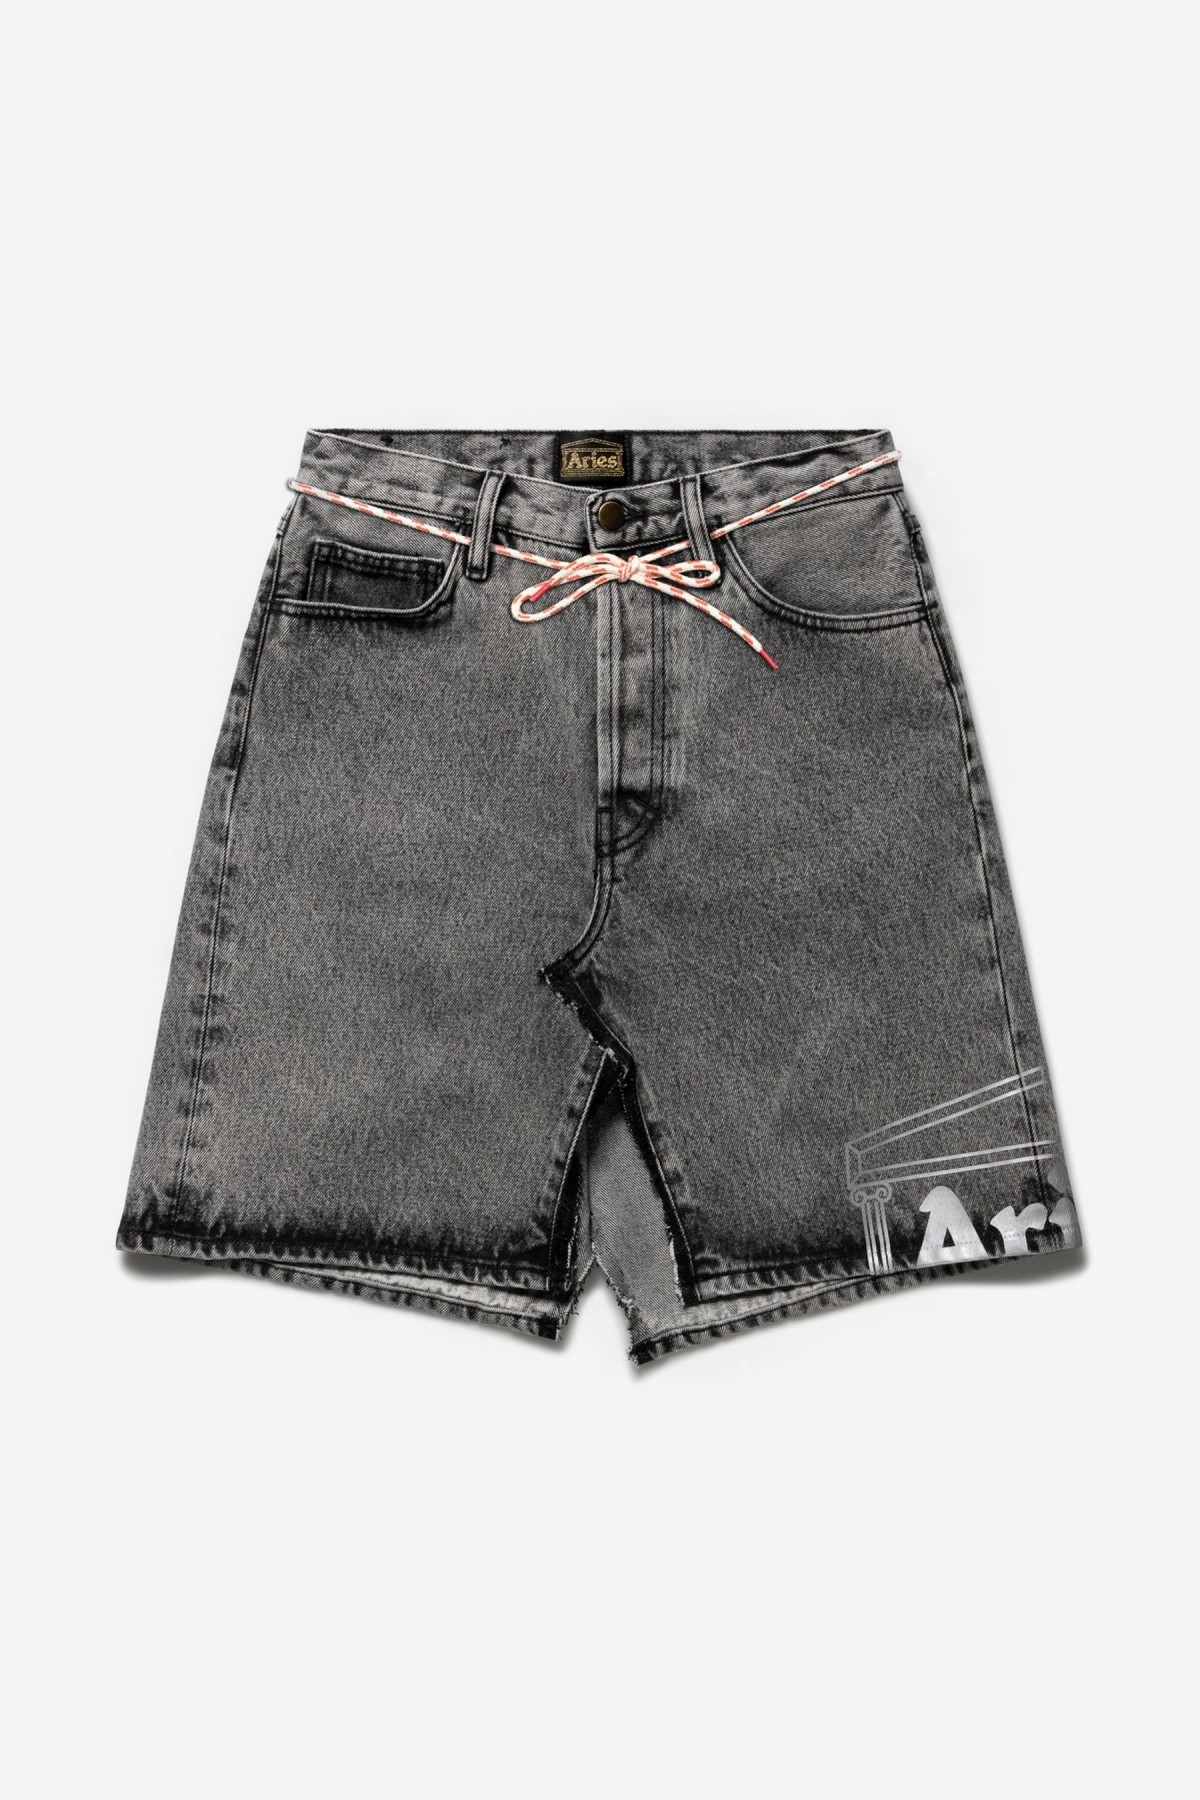 Aries Arise Temple Acid Wash Deconstructed Skirt in Grey